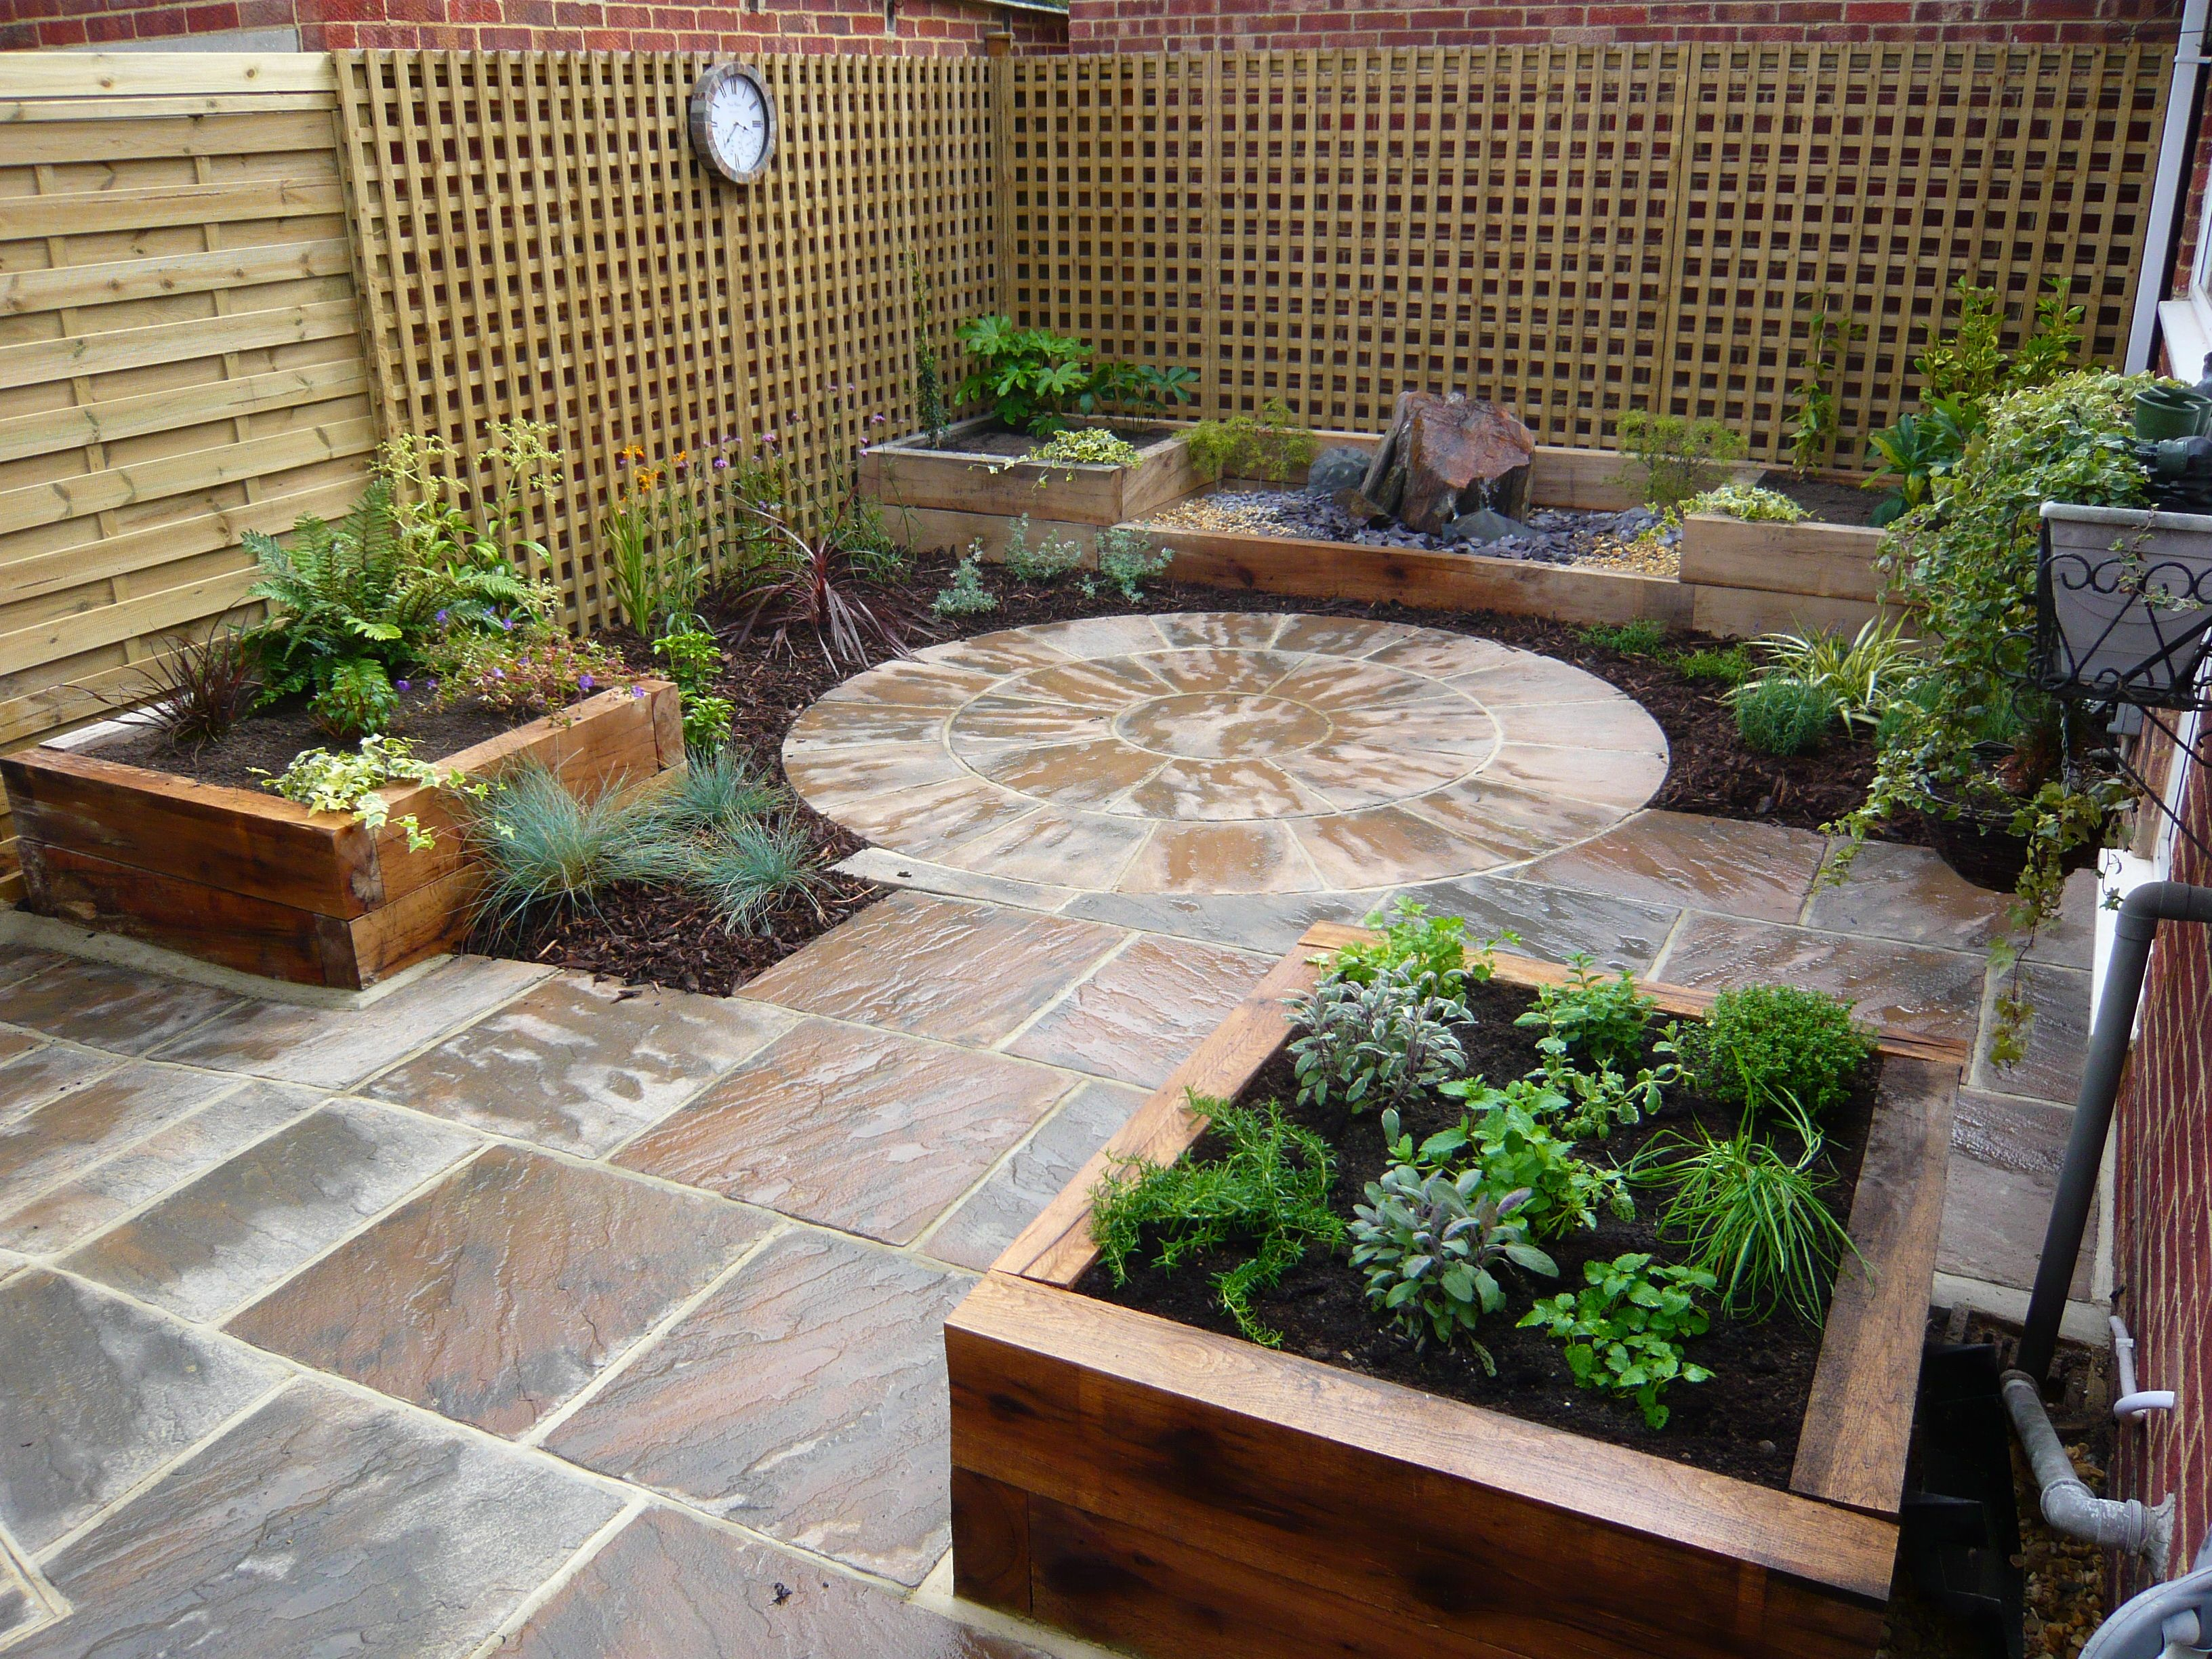 Courtyard garden low maintenance raised beds creating for Courtyard landscaping ideas